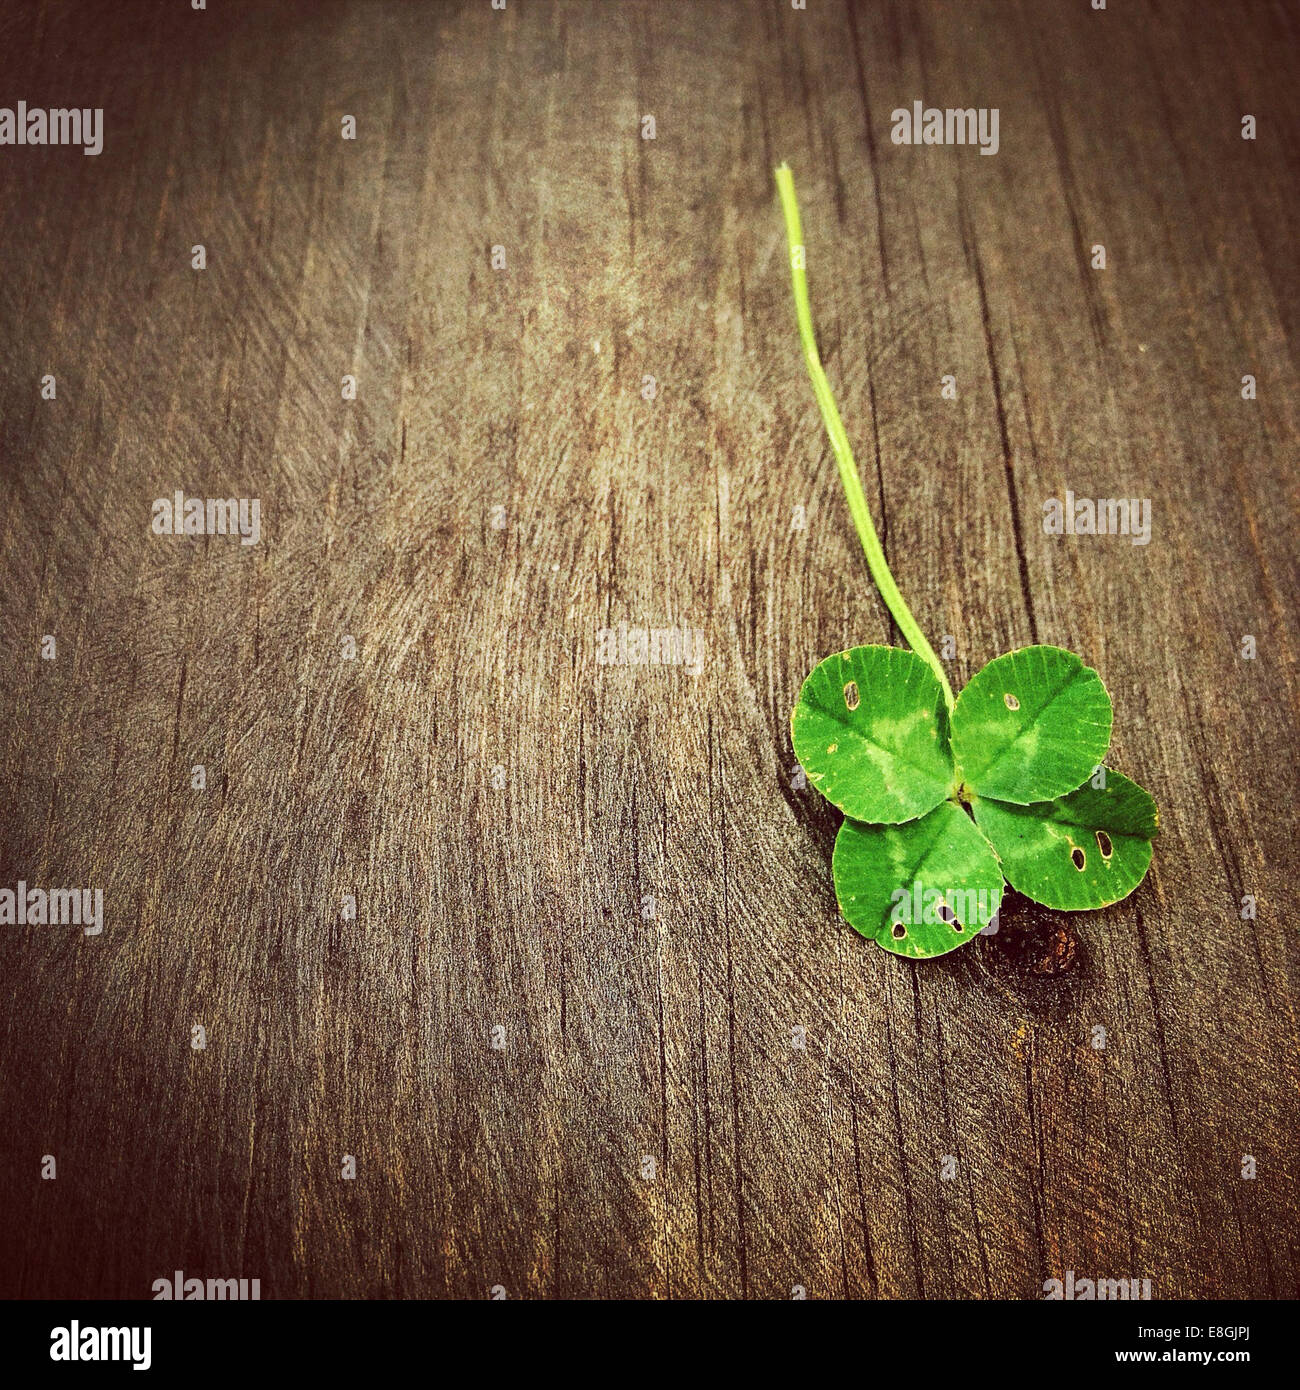 Four leaf clover on wooden table - Stock Image